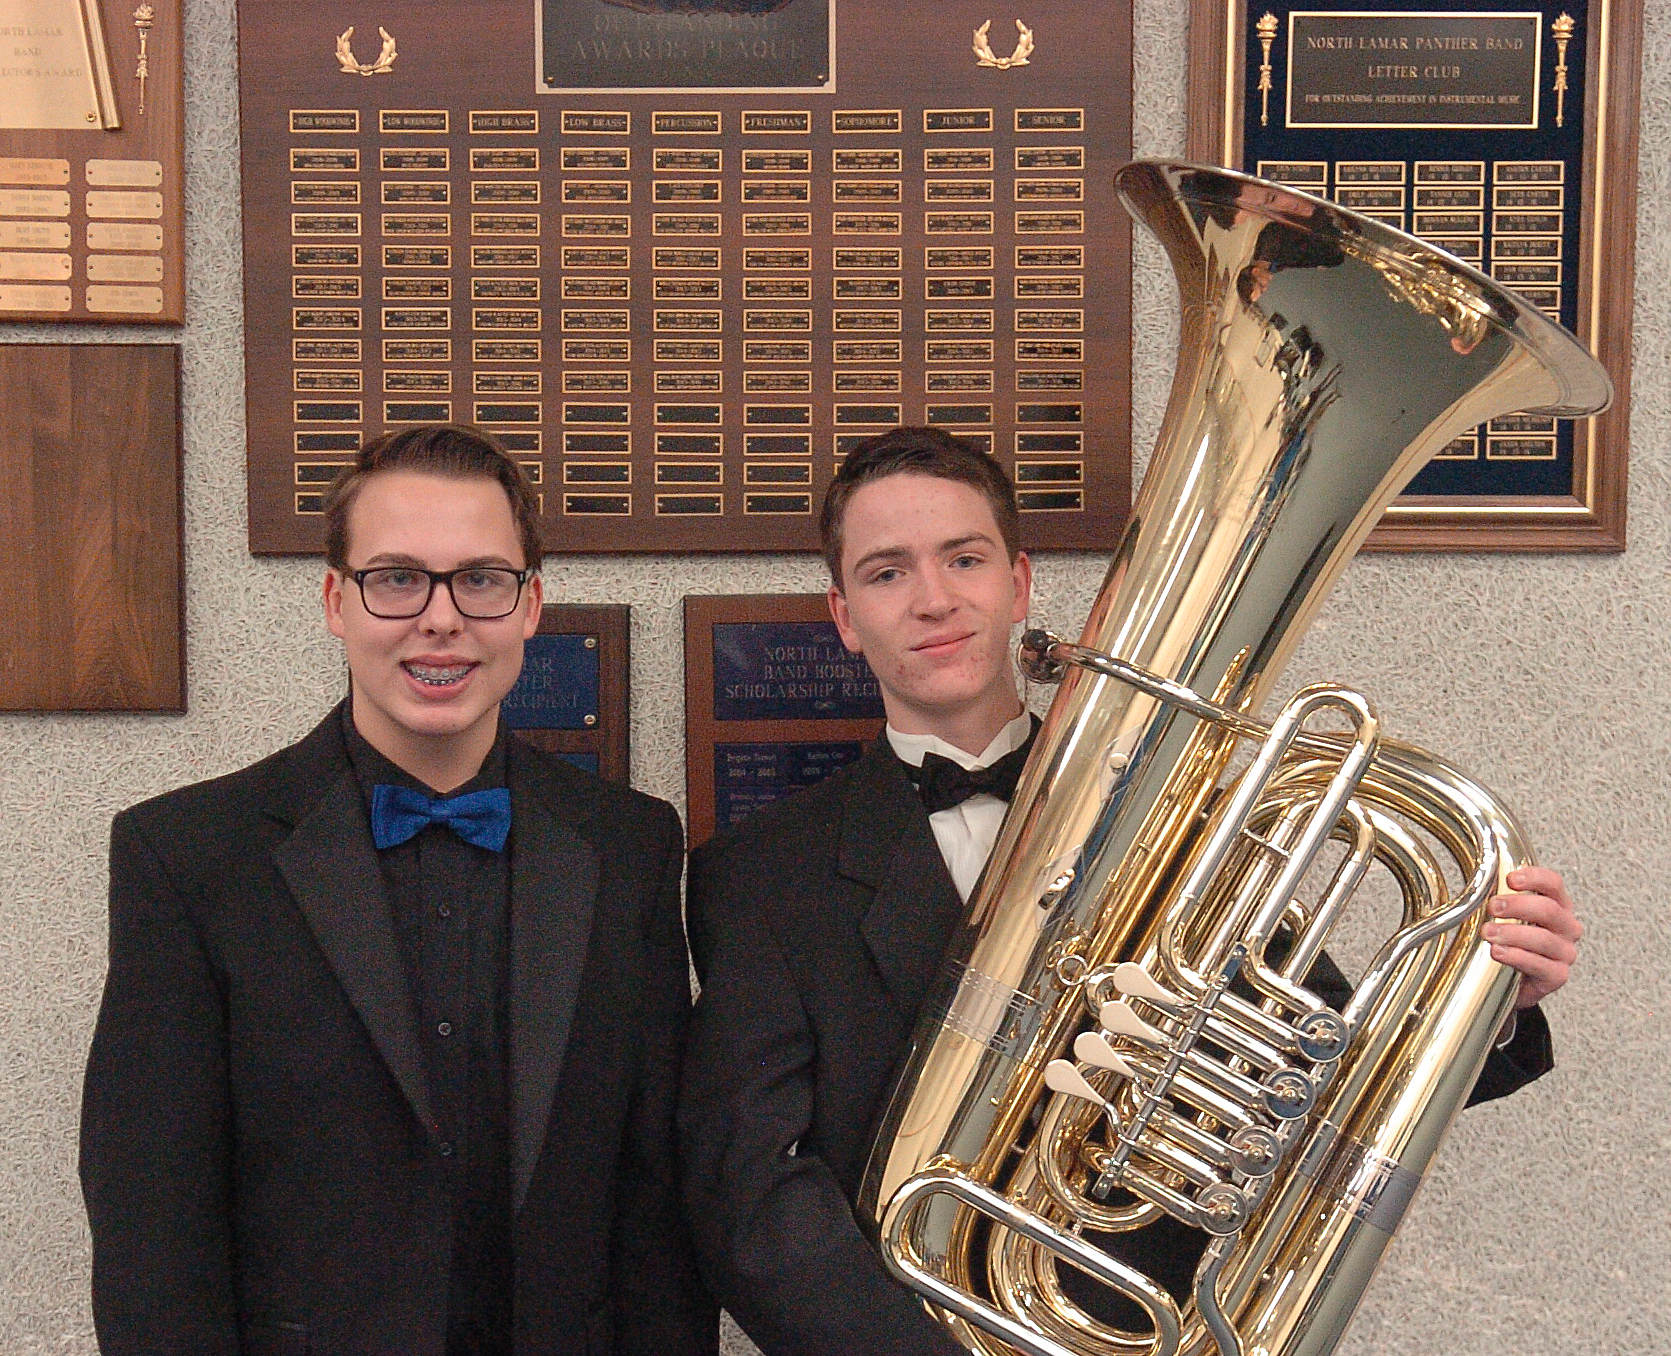 North Lamar High School freshman  Sean Gist  has been named to the Texas All-State Choir while junior  Seth Carter was named to the Texas All-State Band.  Both will represent North Lamar and Paris, Texas, at the Texas Music Educators Association Convention in San Antonio  on February 11.